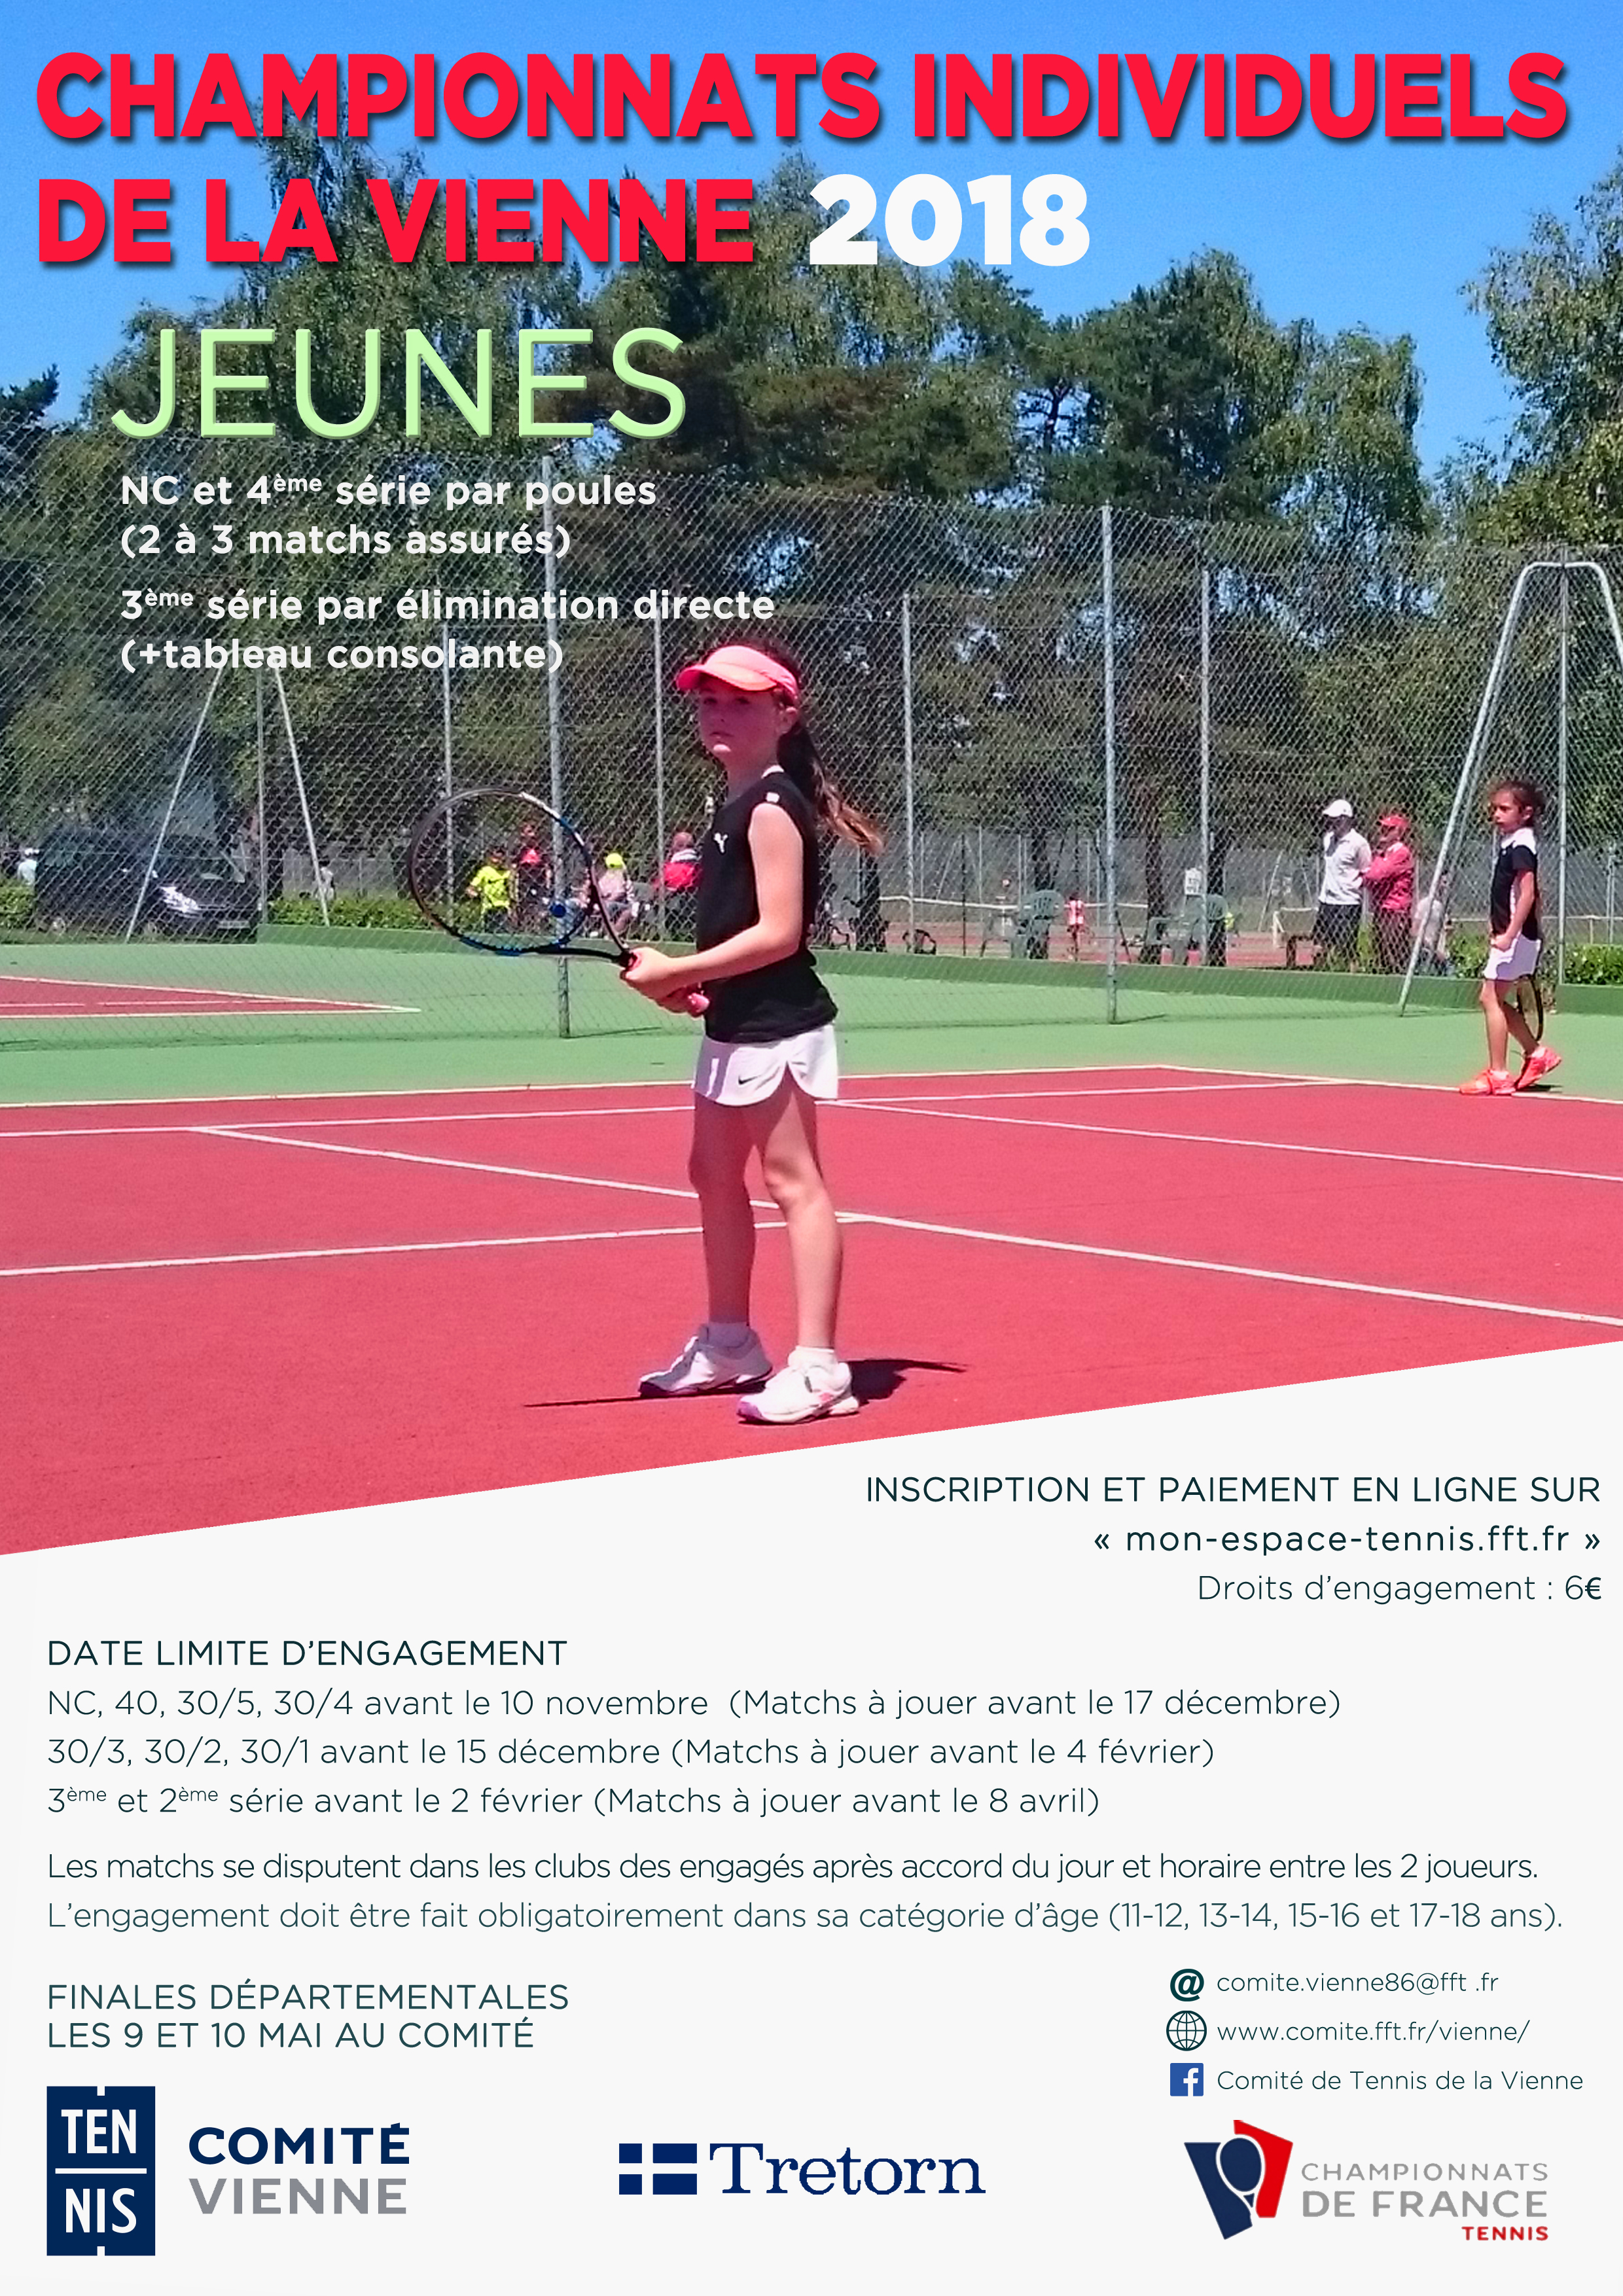 Accueil - Ligue poitou charente tennis de table ...